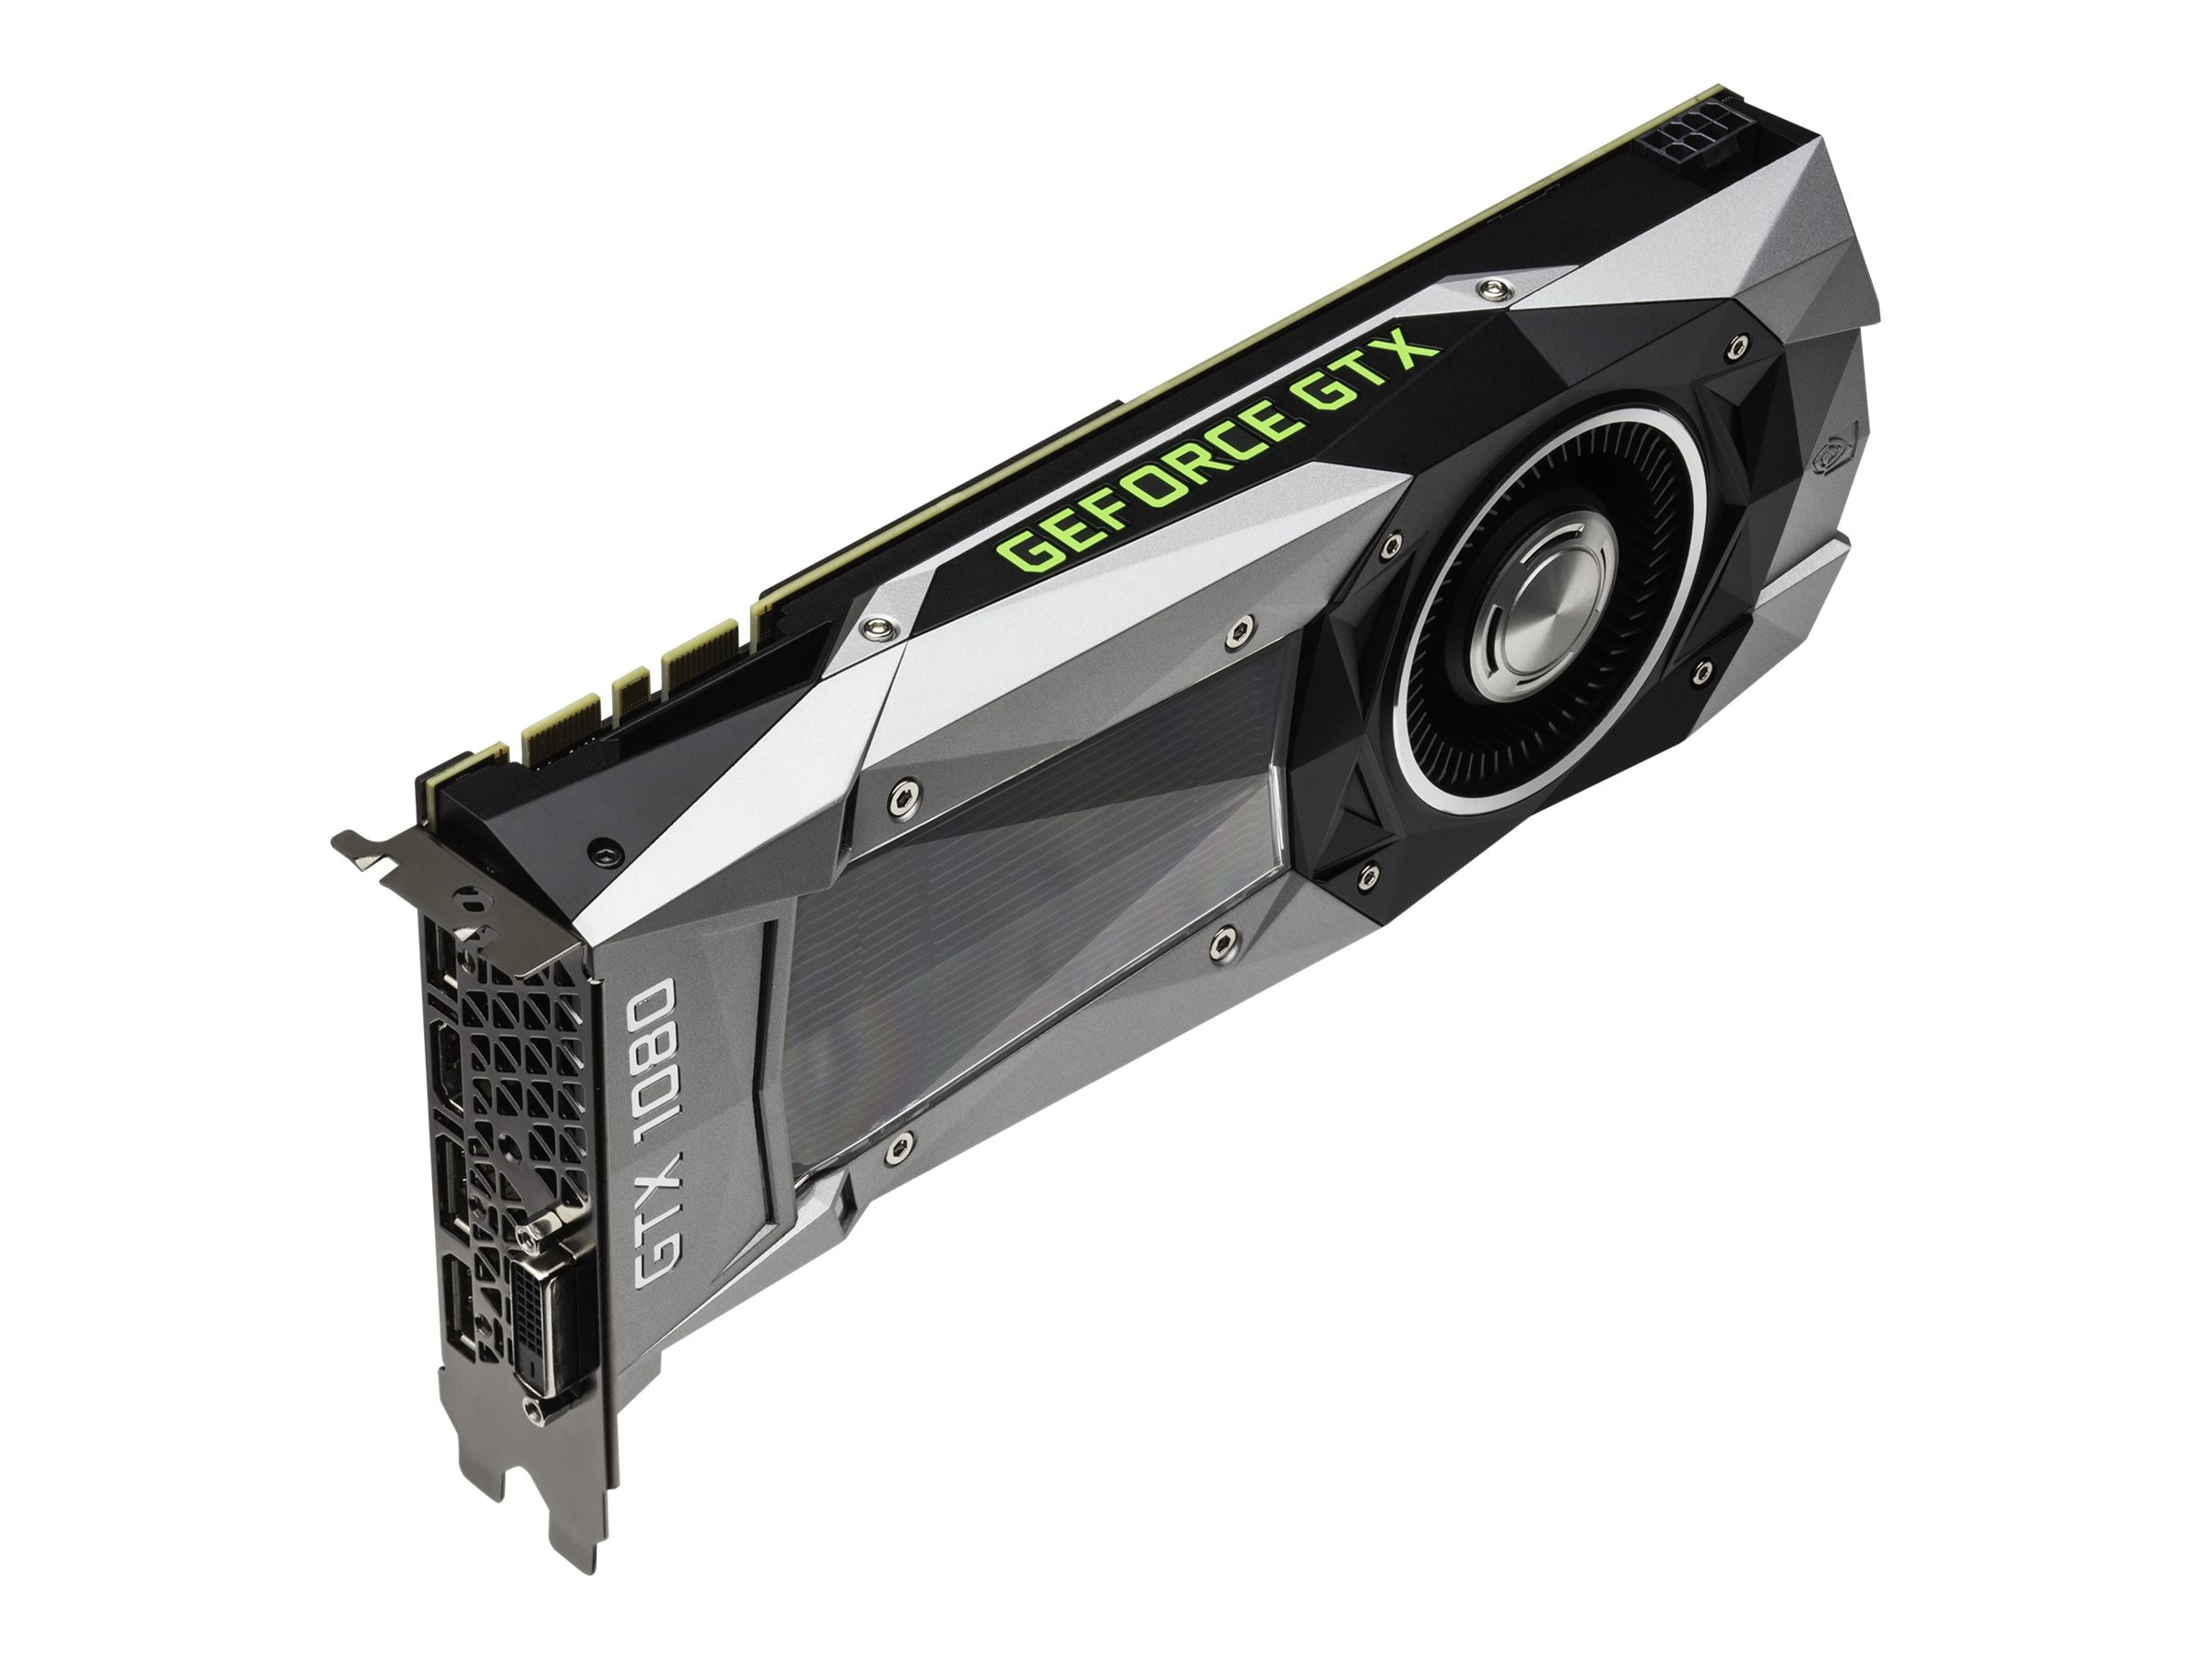 Microstar GeForce GTX 1080 PCIe 3.0 Founders Edition Graphics Card, 8GB GDDR5X, GTX 1080 FOUNDERS EDITION